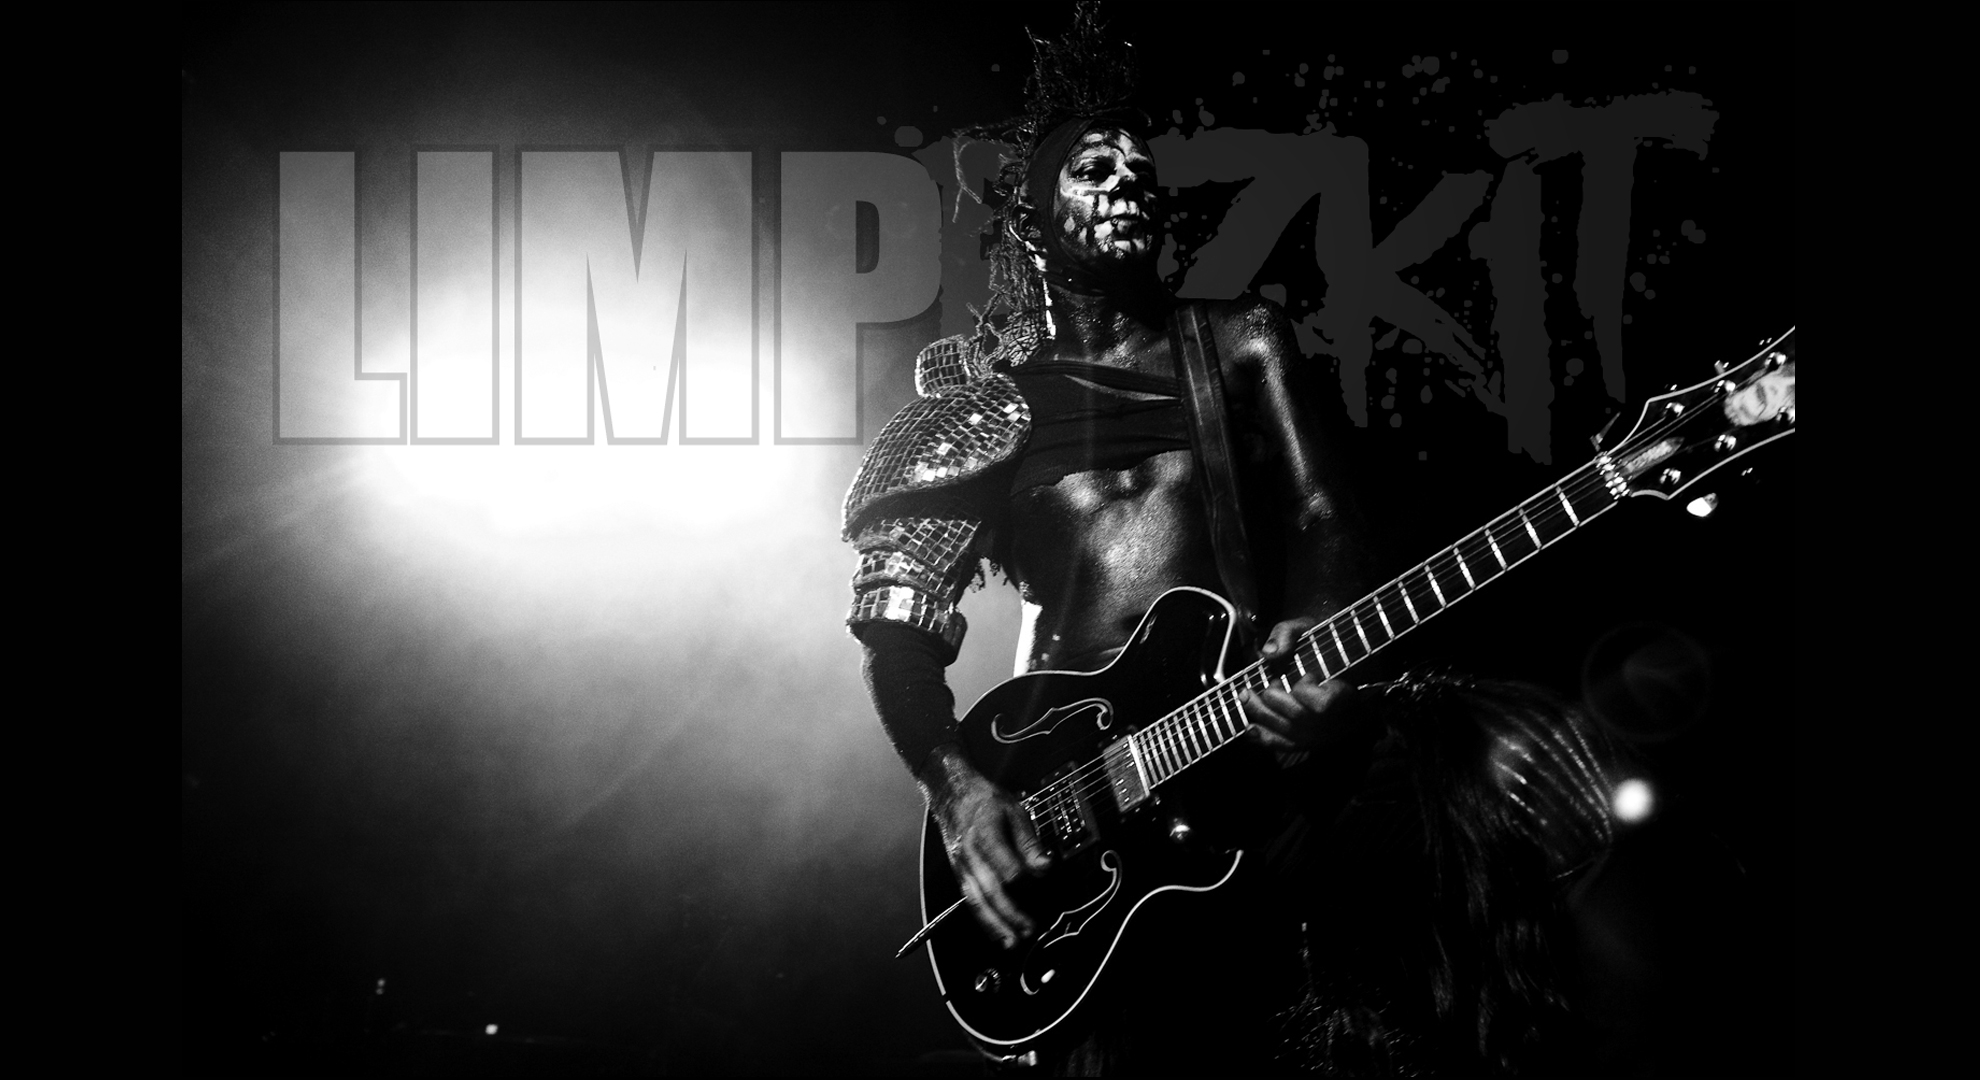 Call Of Duty Wallpaper Hd Wes Borland Wallpapers 1980x1080 612783